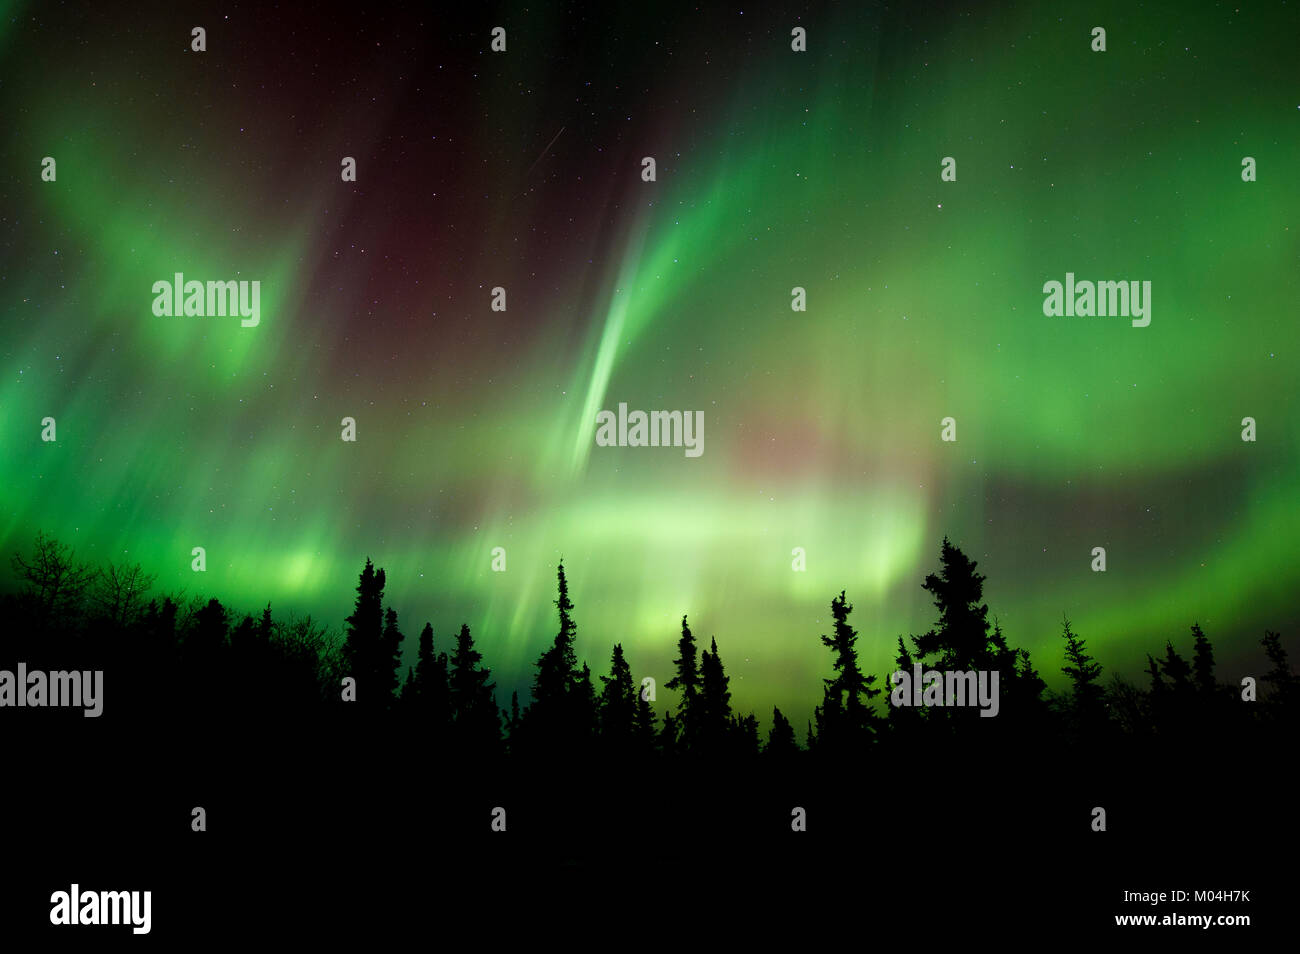 Aurora borealis, northern lights, north of Fairbanks, Alaska. March 2016, by Dominique Braud/Dembinsky Photo Assoc Stock Photo